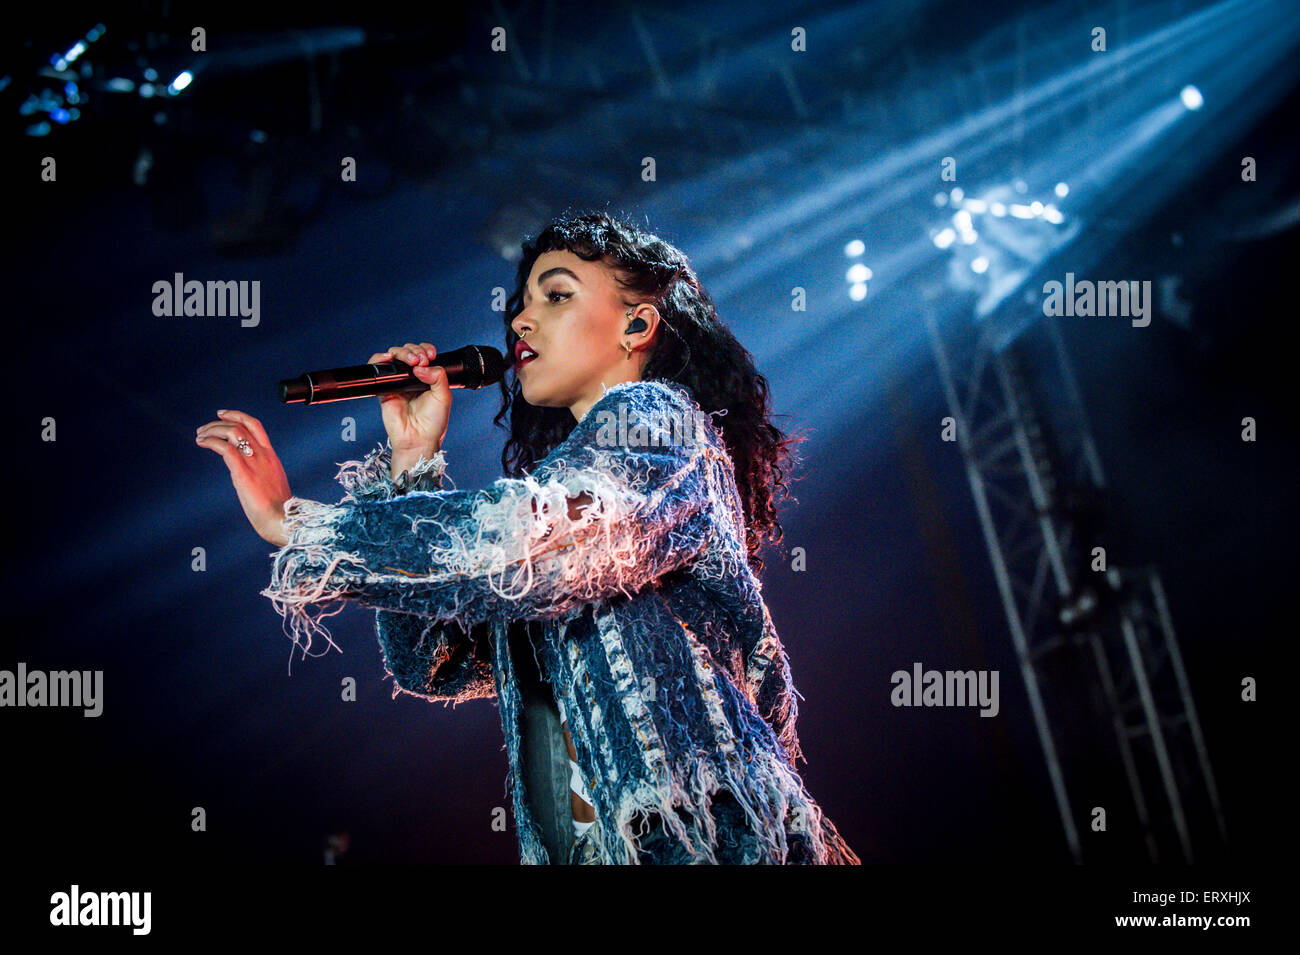 FKA Twigs performing at the Parklife 2015 music festival in Heaton Park, Manchester on Sunday 7th June 2015 - Stock Image